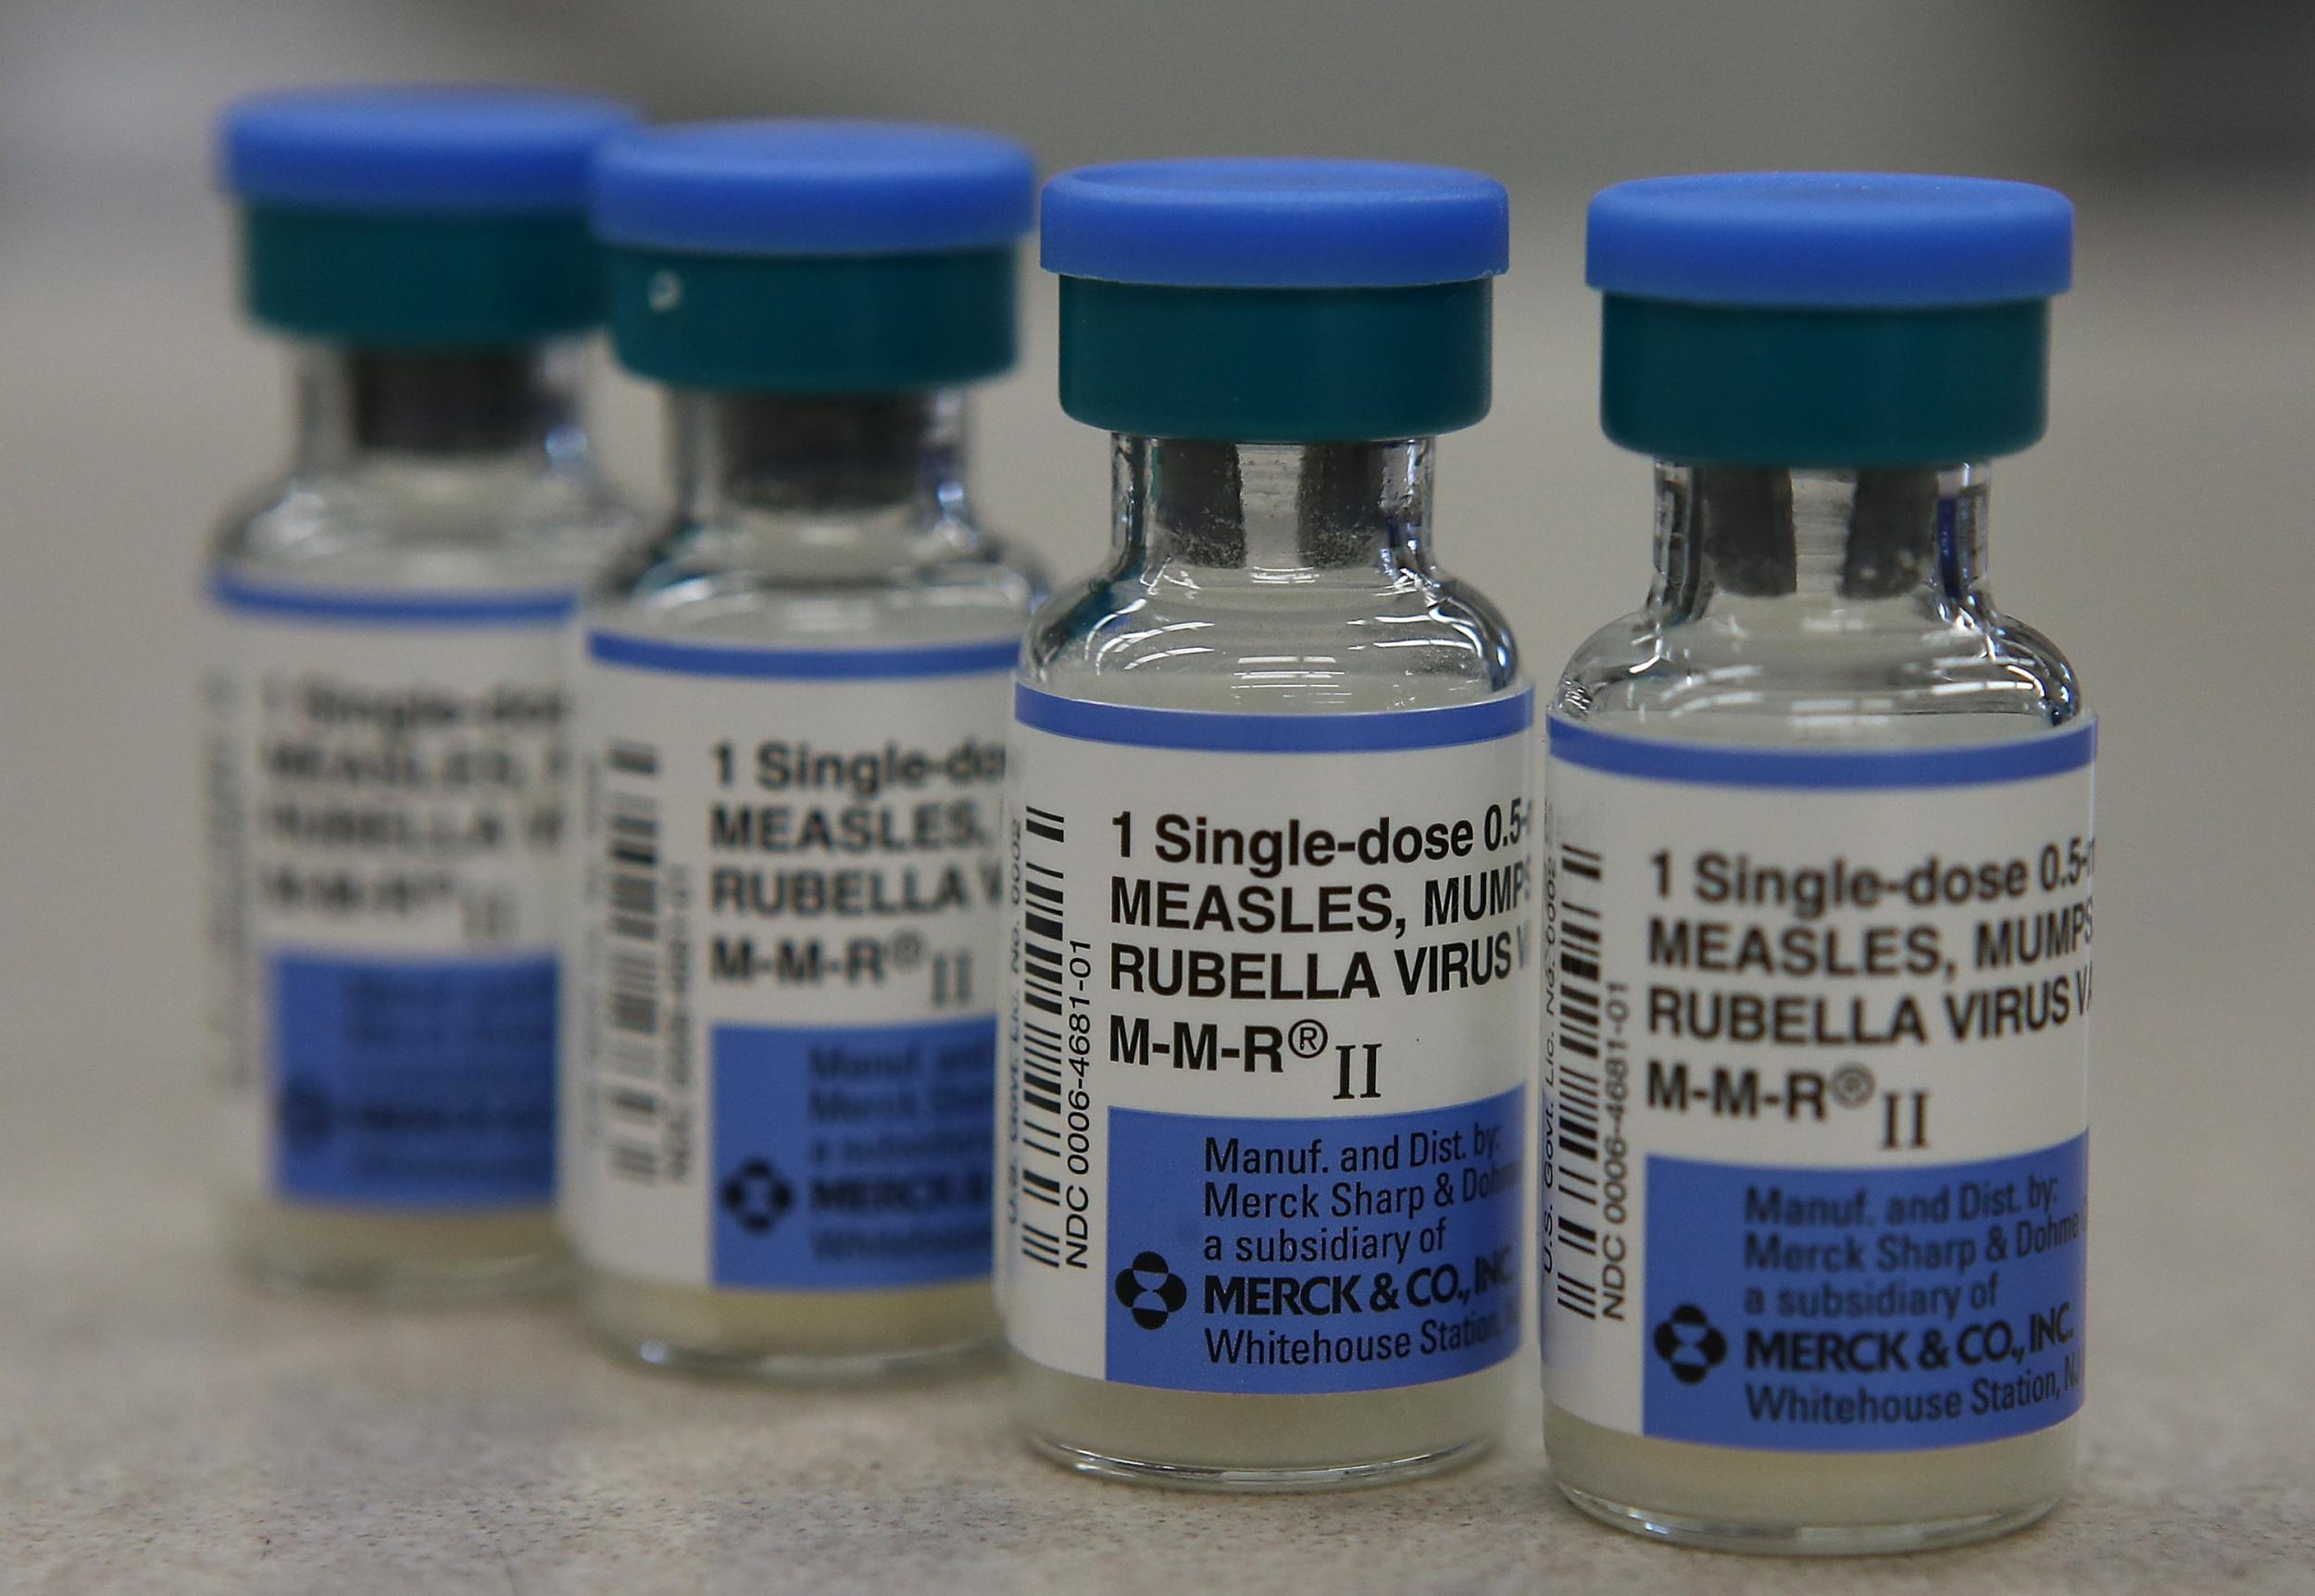 Measles crisis killed more than 140,000 last year with majority of victims aged under five